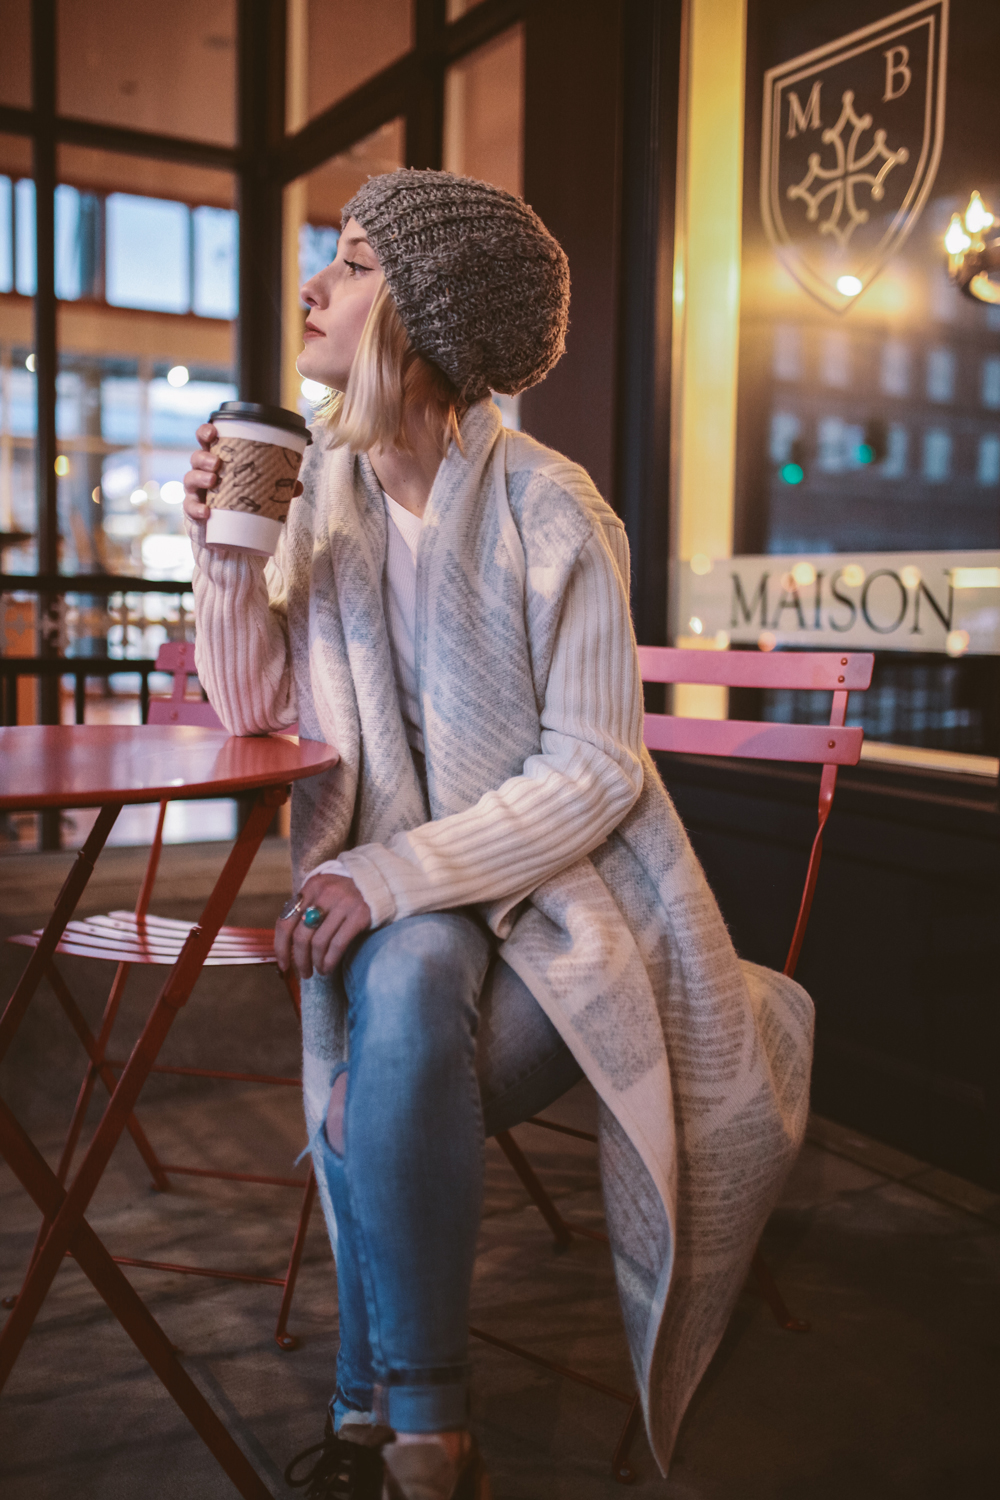 mikal_wright: a young woman enjoys her coffee in a coffee shop